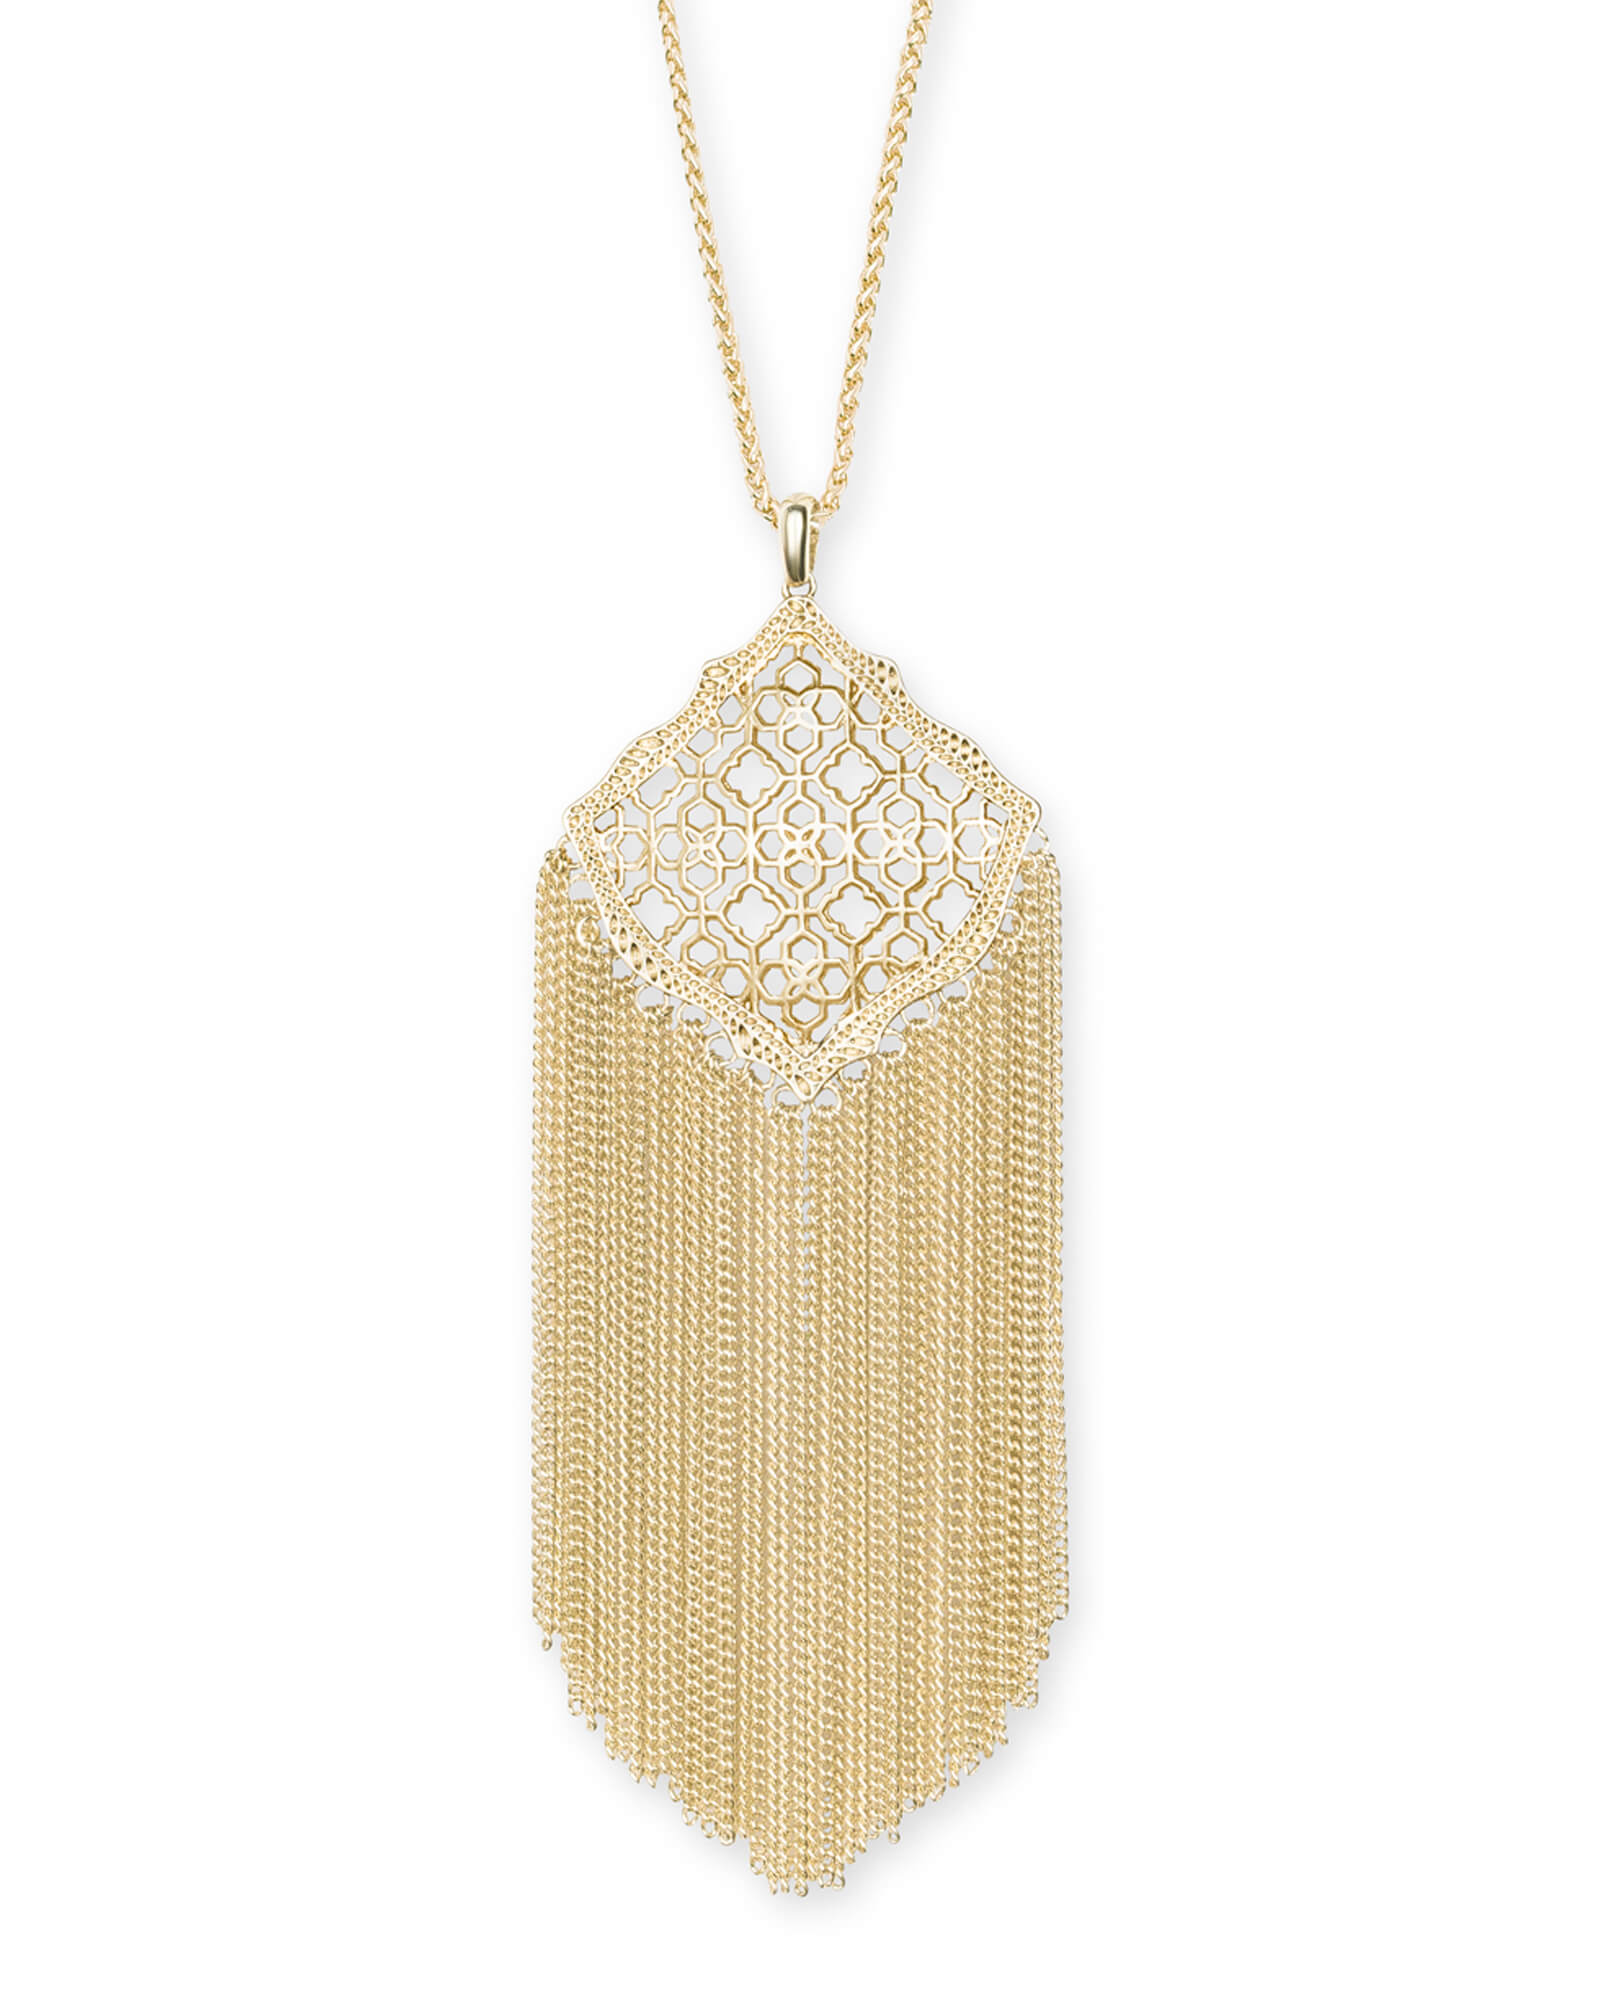 Kingston gold pendant necklace in gold filigree kendra scott kingston gold long pendant necklace in gold filigree mix mozeypictures Images